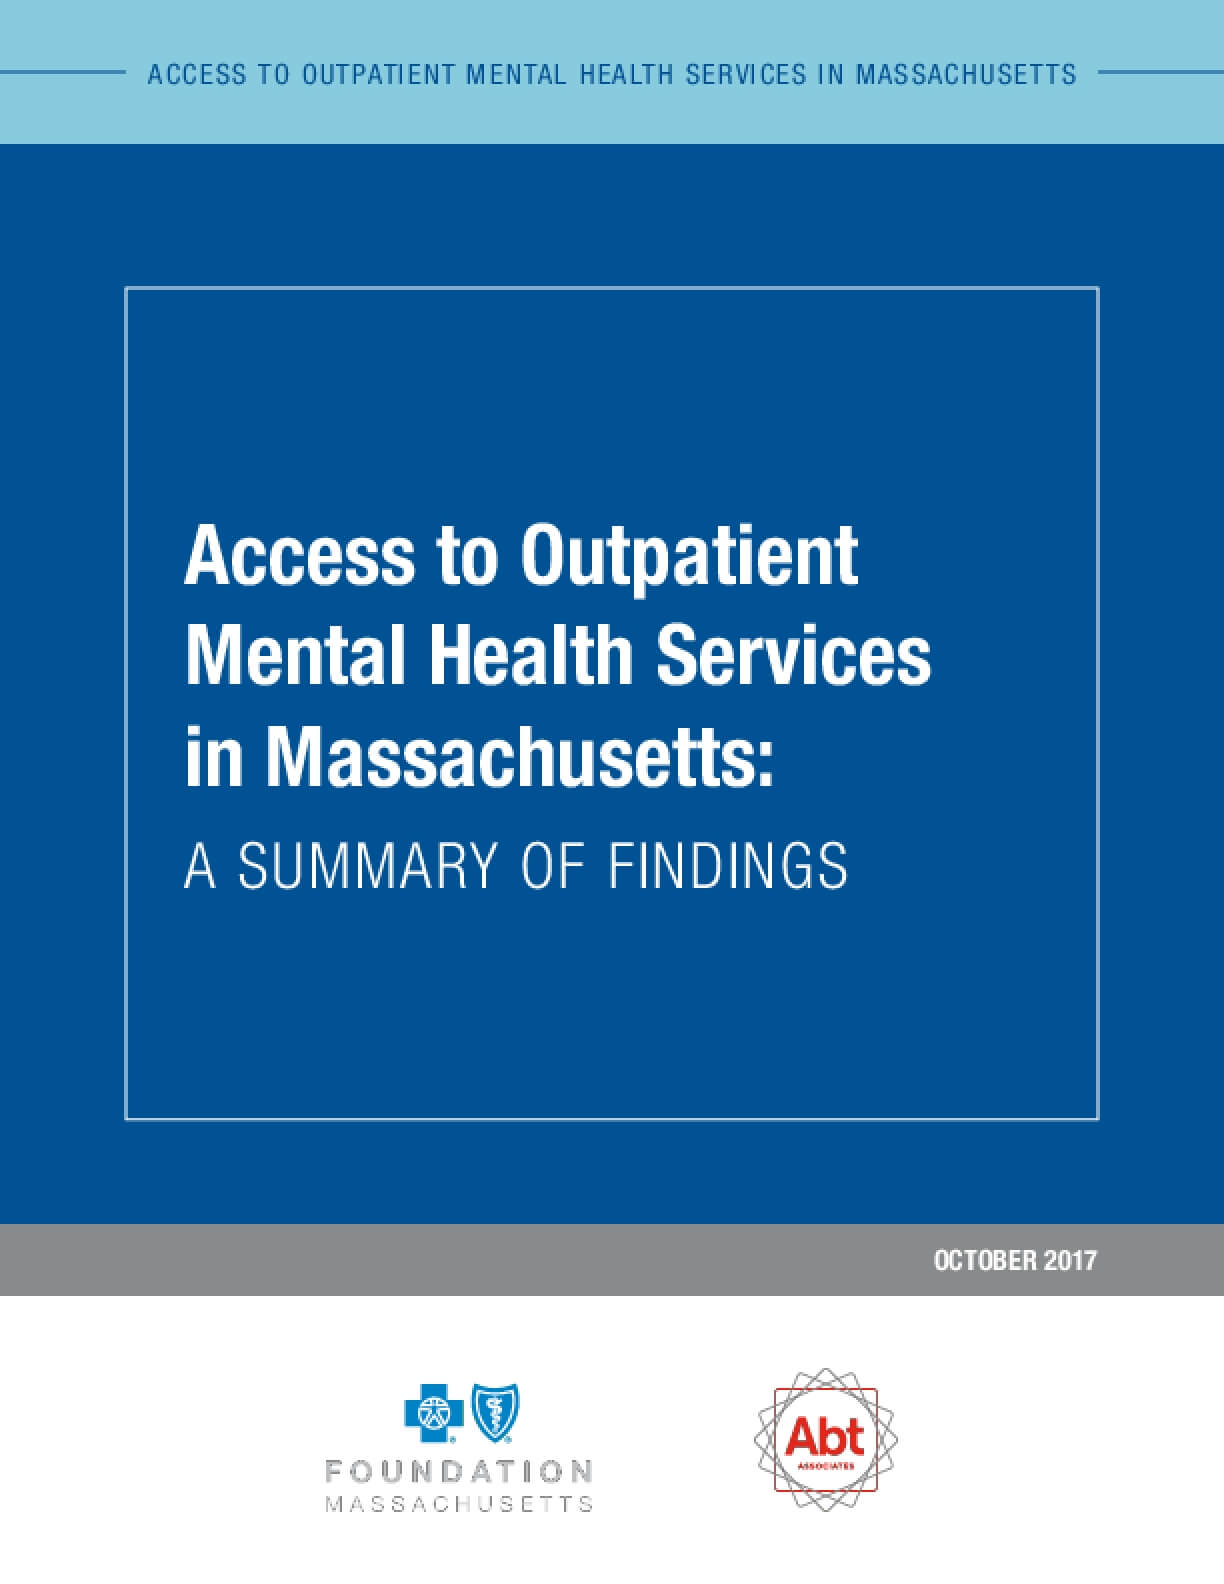 Access to Outpatient  Mental Health Services in Massachusetts: A Summary of Findings